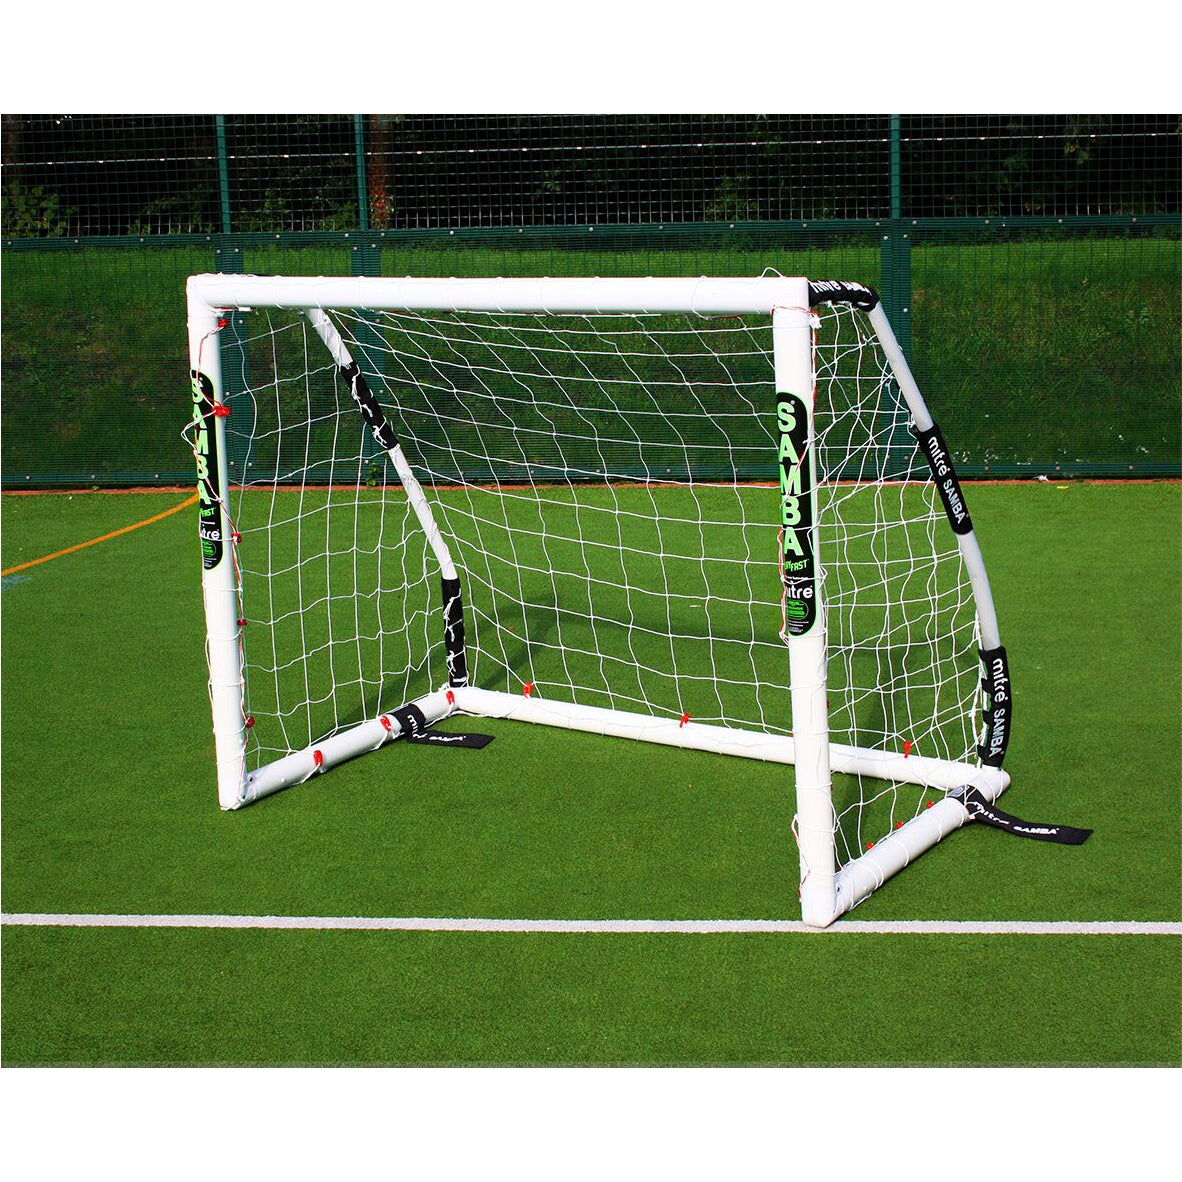 Samba PlayFast Match Goal 5' x 4'